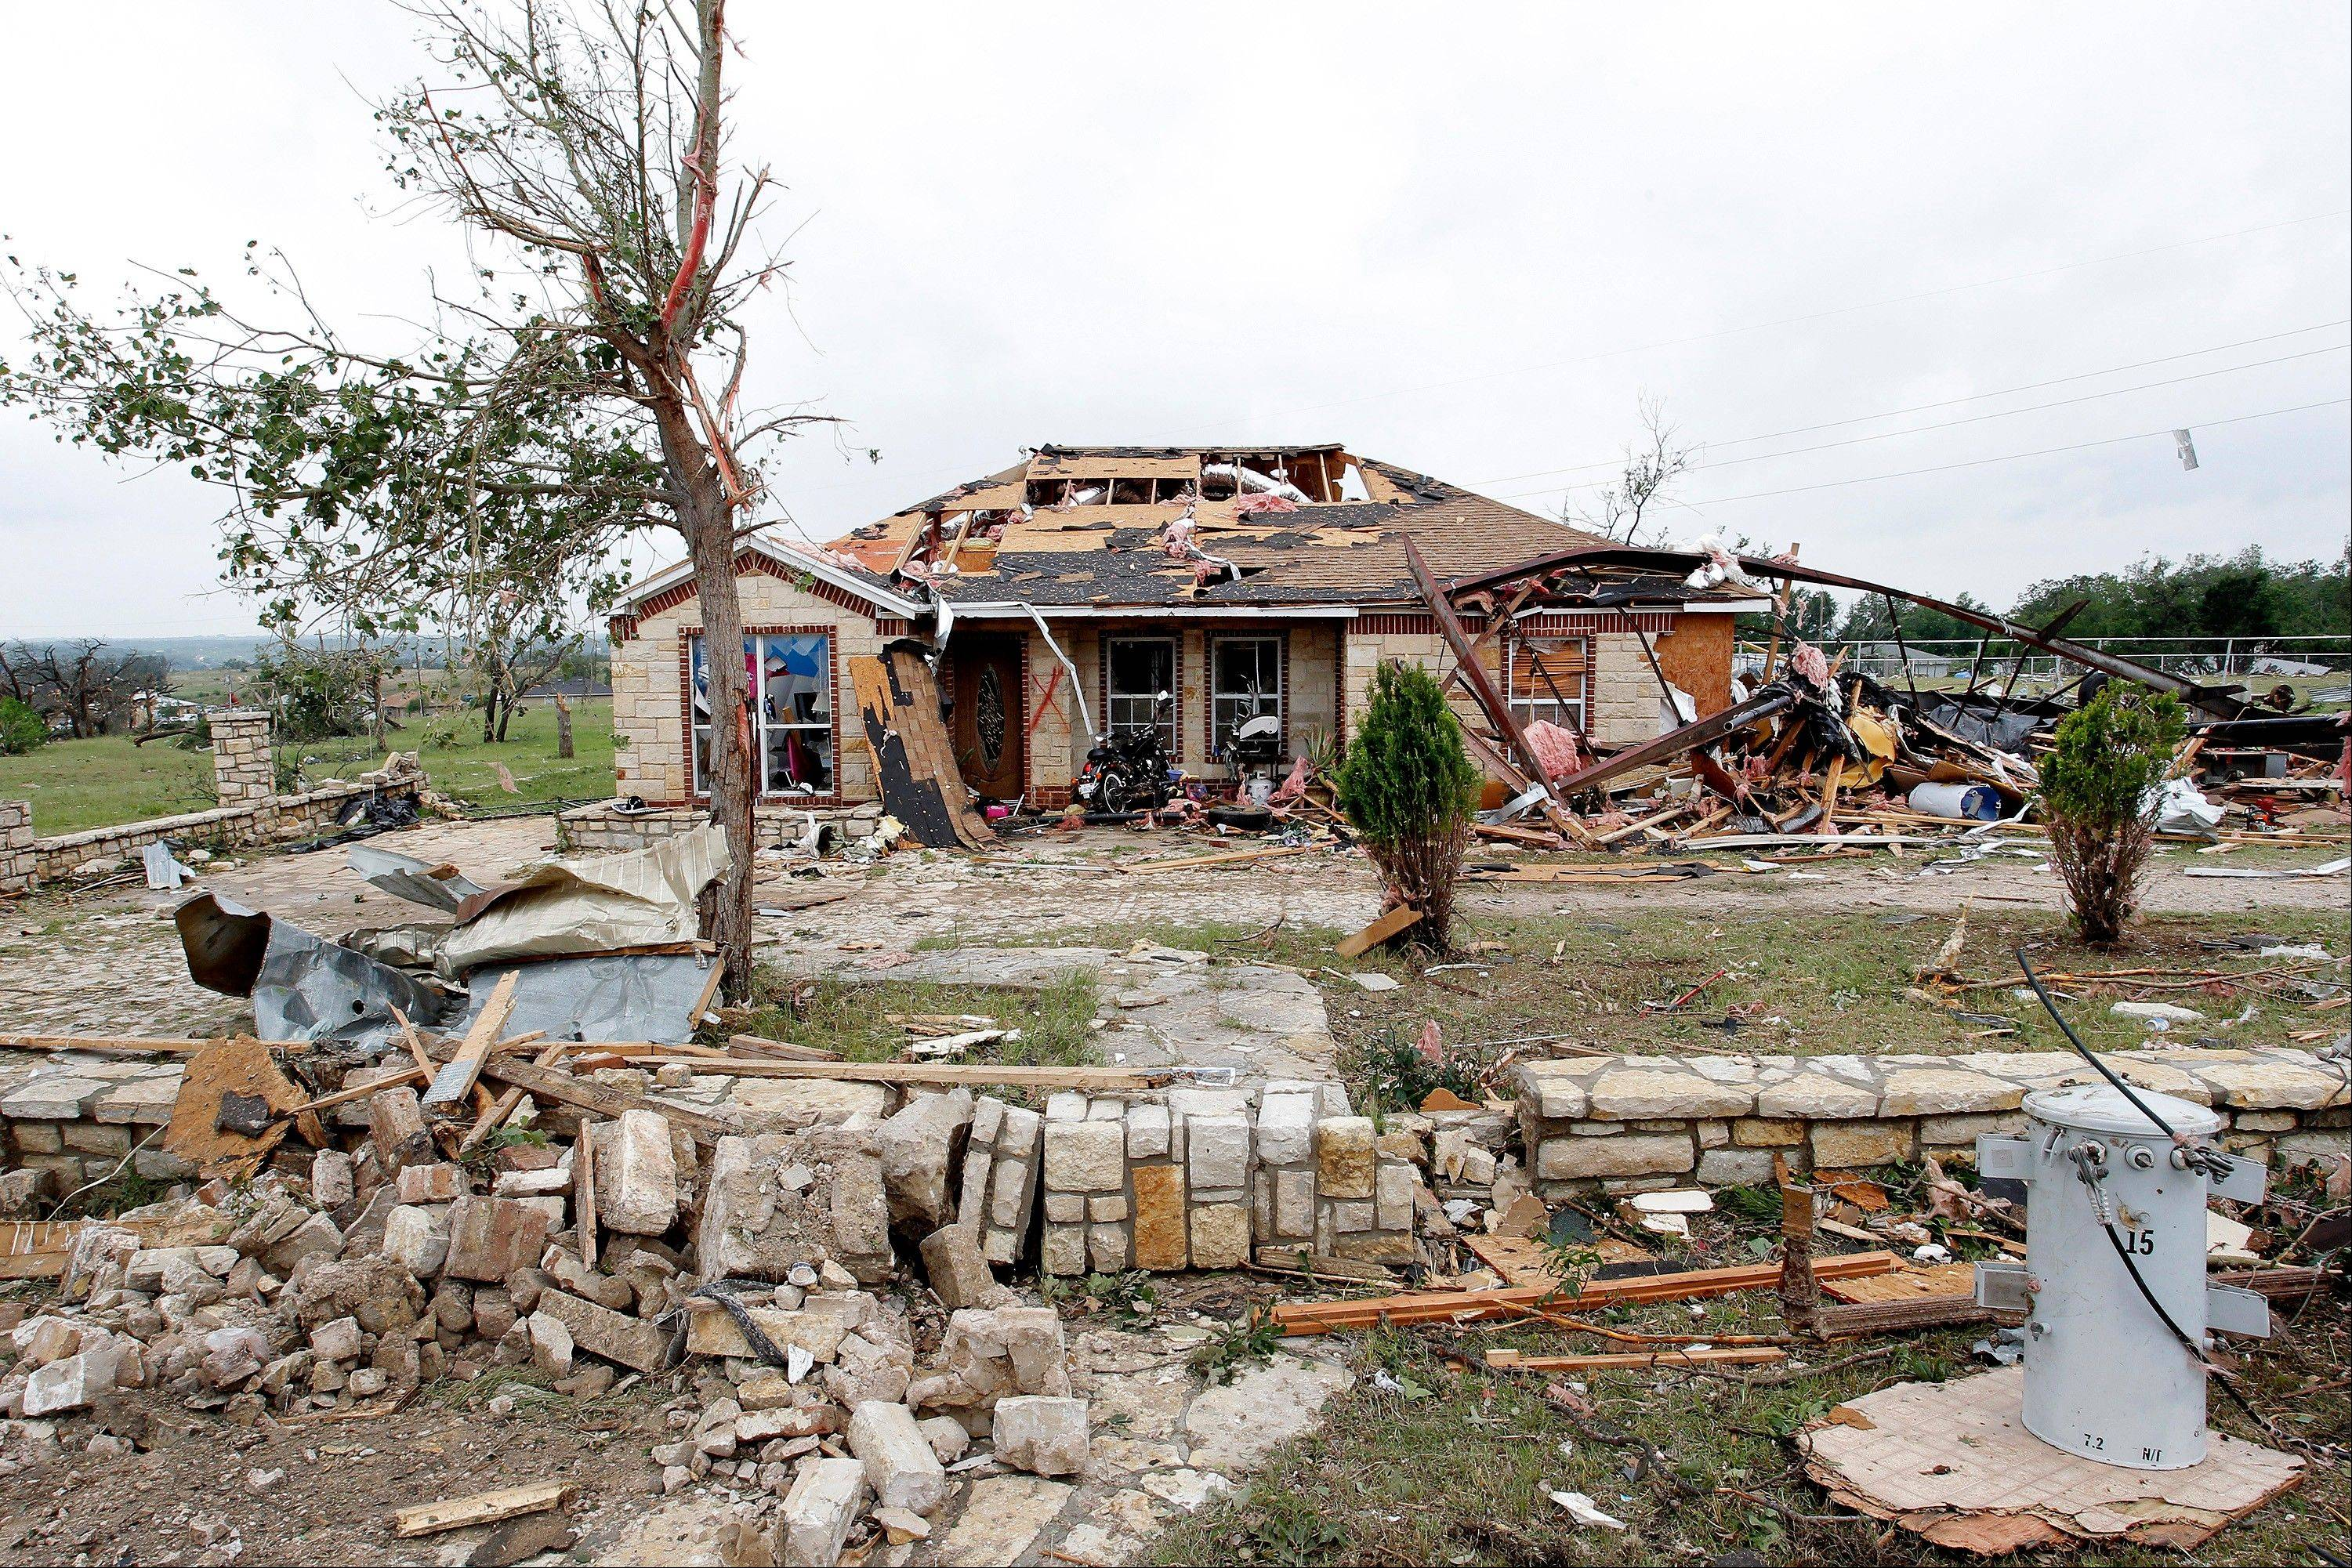 Homes, trees, landscaping, fences, and anything in the path of the tornado is destroyed in the Rancho Brazos neighborhood of Granbury, Texas, Thursday, May 16, 2013. A rash of tornadoes slammed into several small communities in North Texas overnight, leaving at least six people dead, dozens more injured and hundreds homeless.